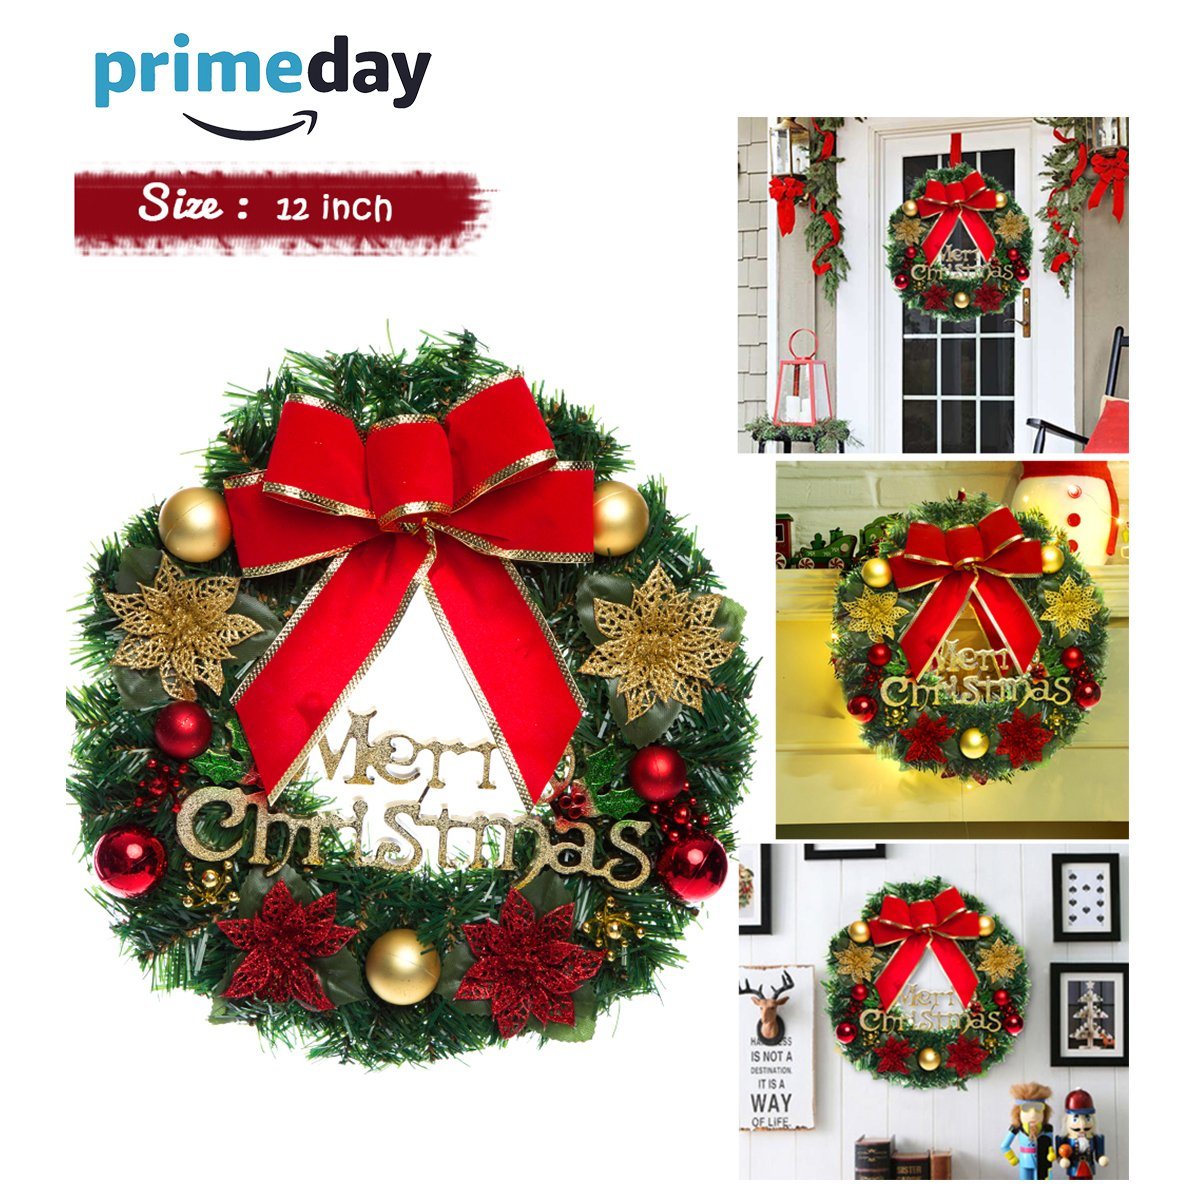 Christmas Wreath, Merry Christmas Decorated Pine Wreath , Artificial Flower Wreath Garland Door Decorative Hanging Christmas Wreaths Garland for Home Decorationwiyh Bowknot, Bells, Bristles, Cone, Red